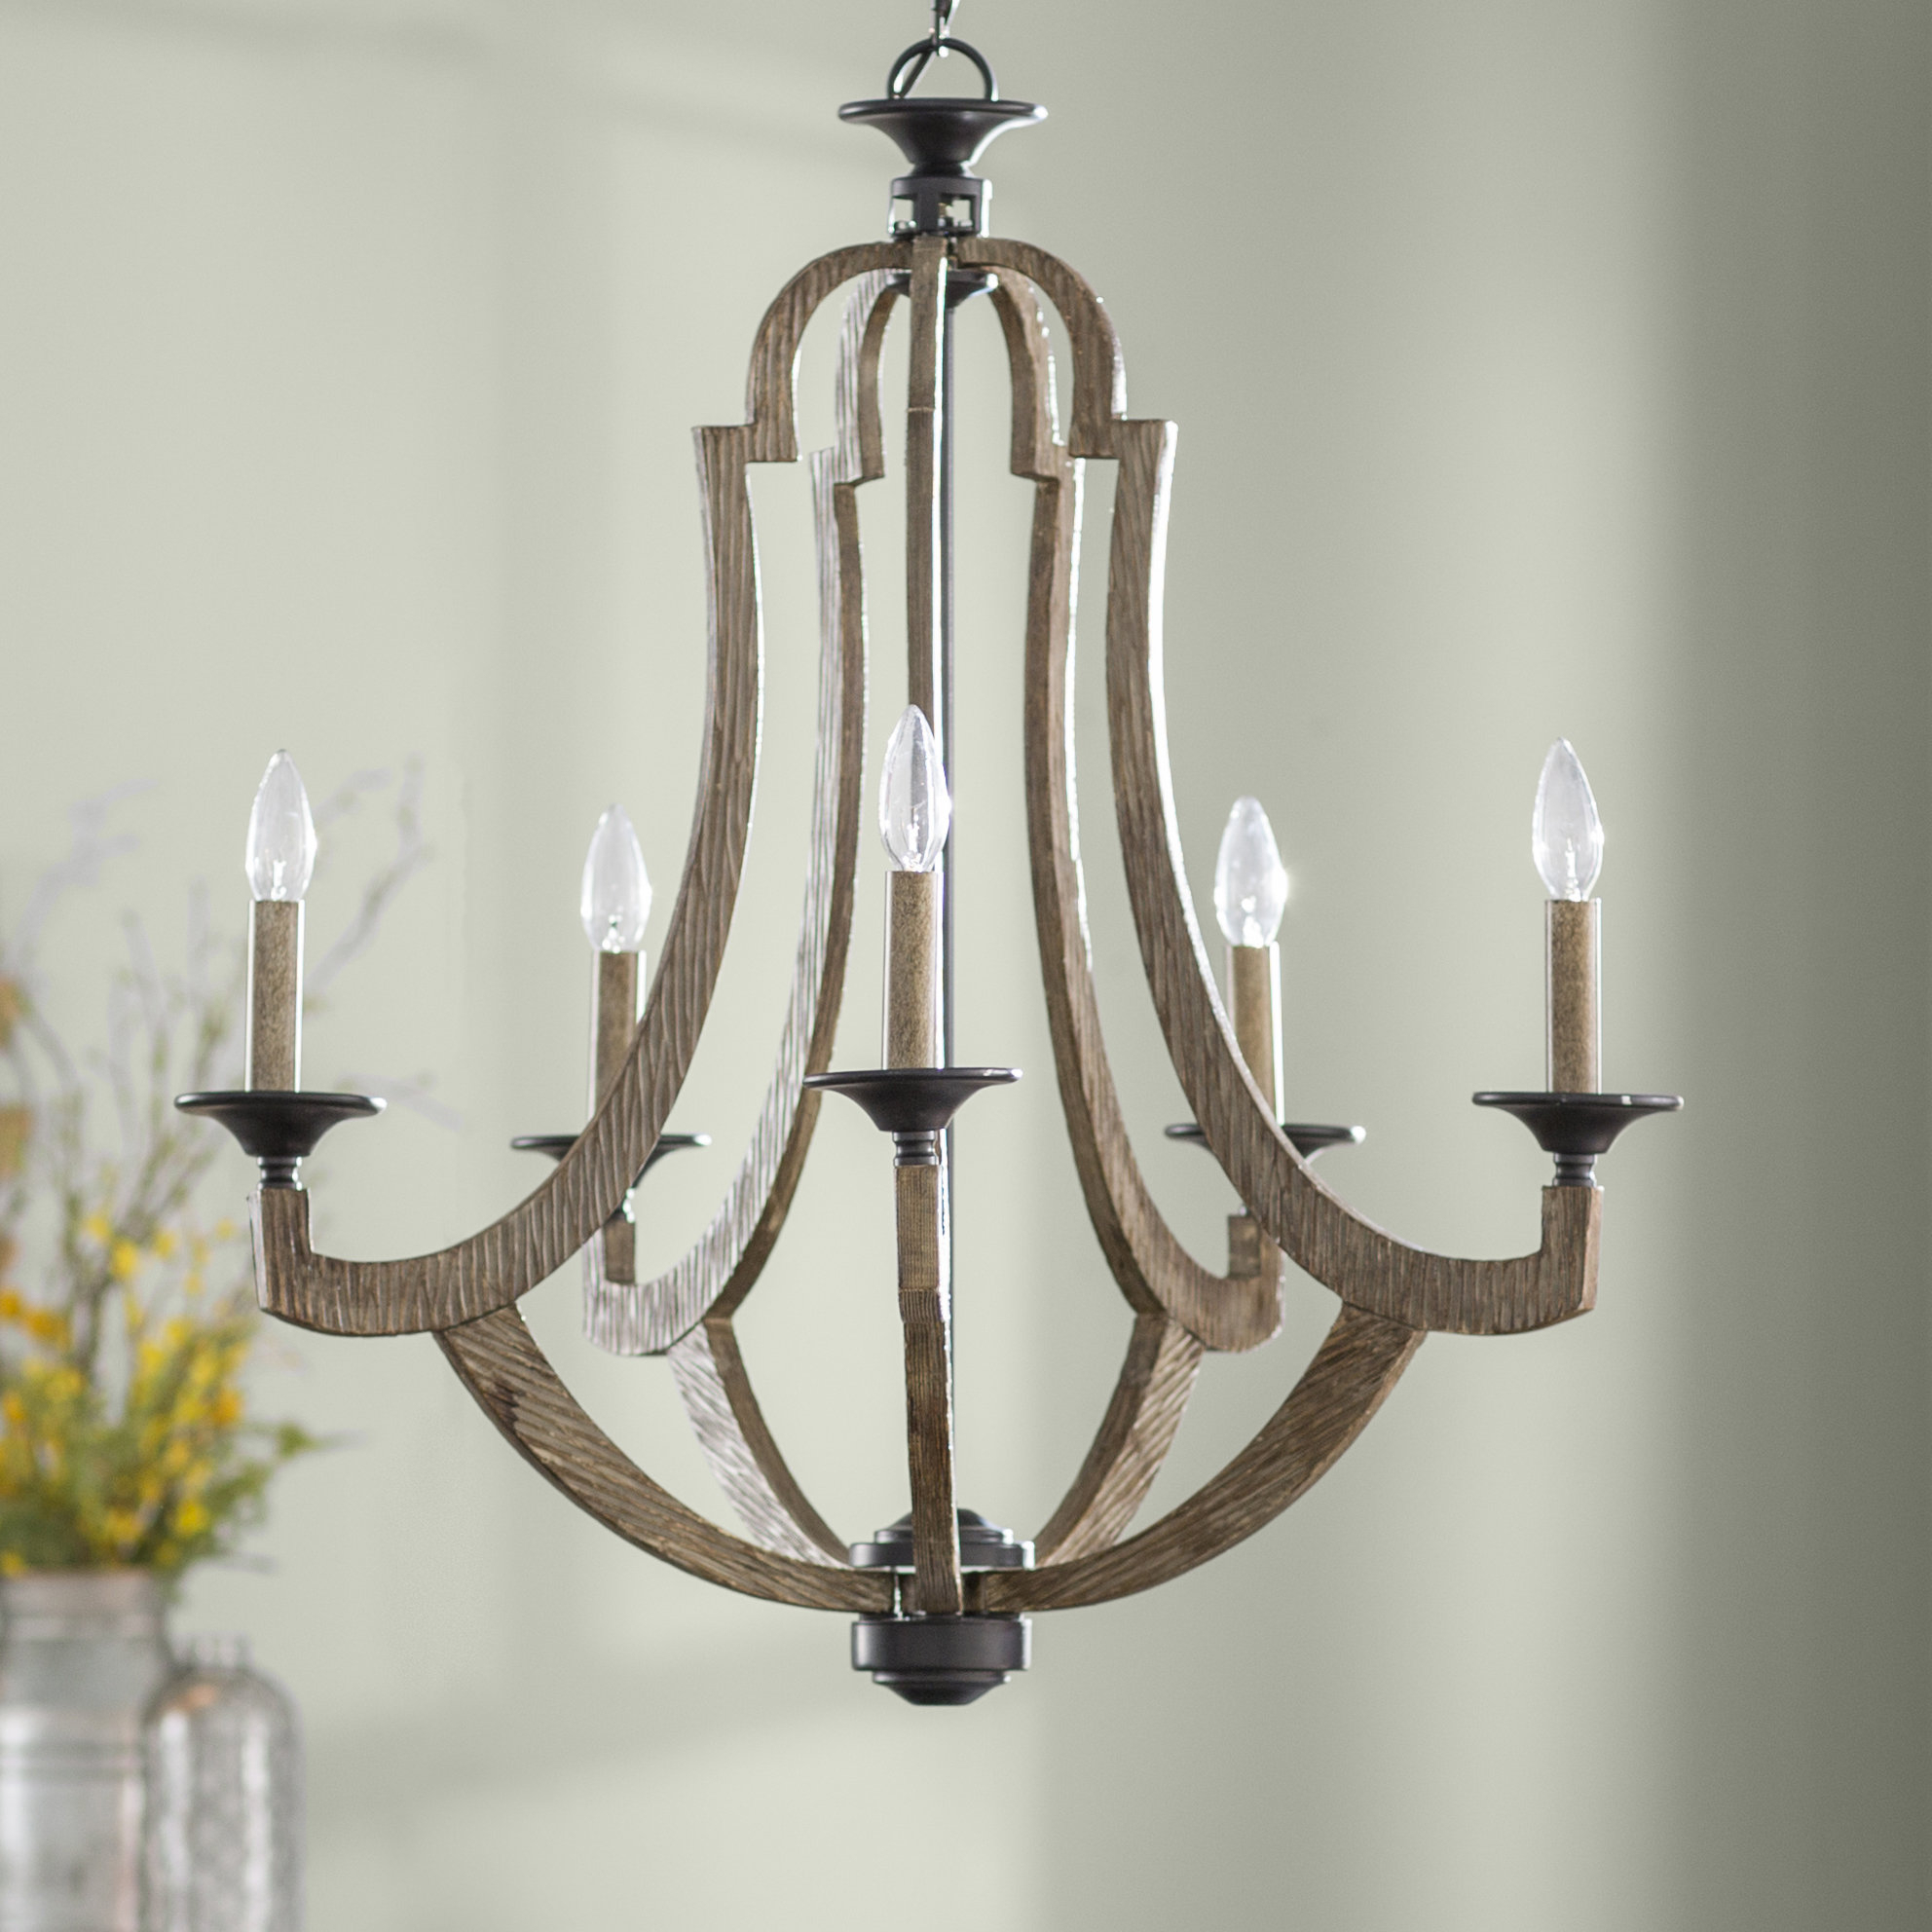 Duron 5 Light Empire Chandeliers Within Preferred Laurel Foundry Modern Farmhouse Marcoux 5 Light Empire Chandelier (Gallery 12 of 20)